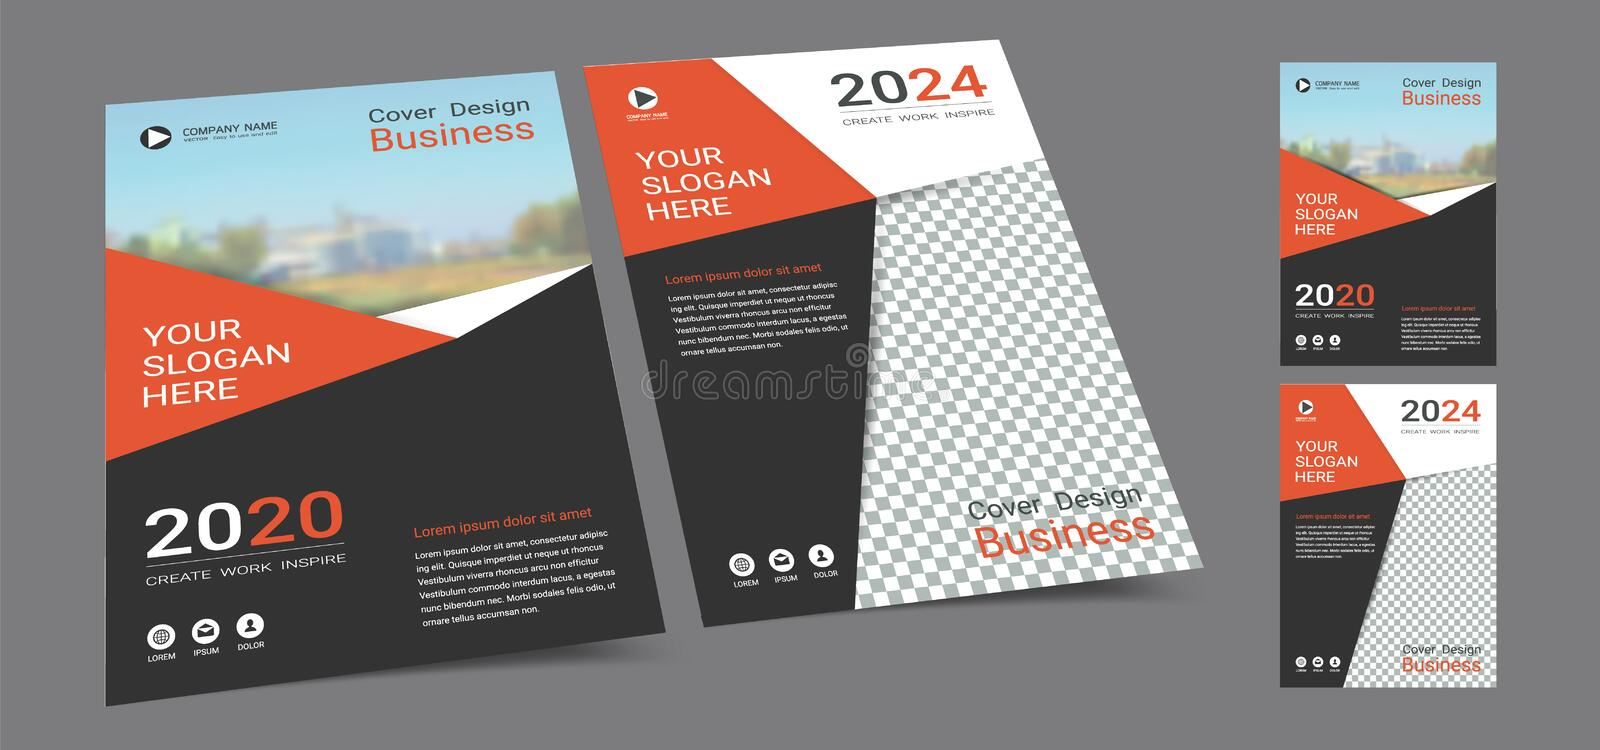 Poster cover book design template in A4 layout with space for photo background. royalty free stock images